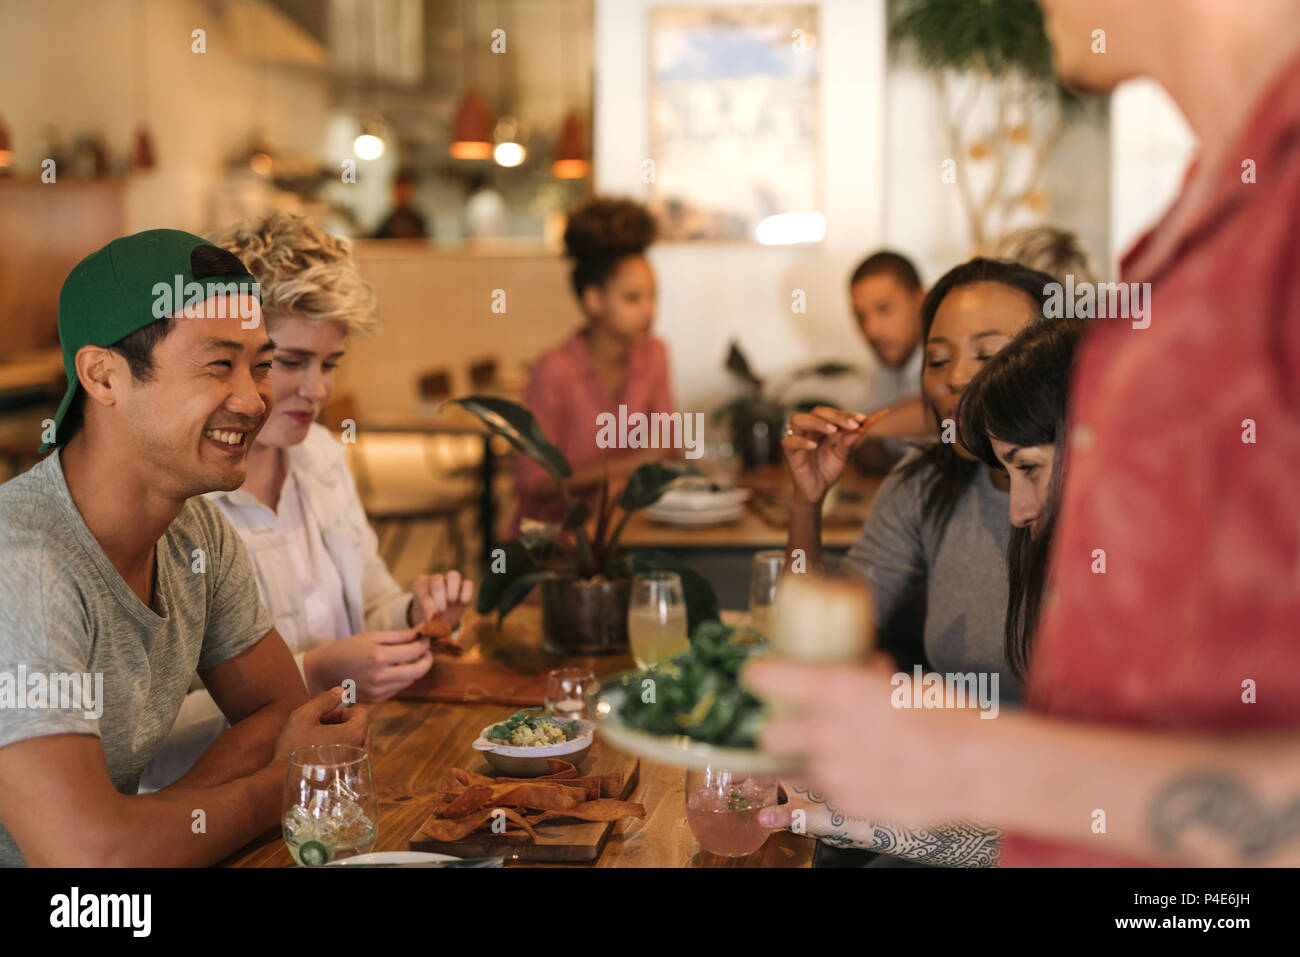 Smiling young friends enjoying themselves while sitting in a bistro - Stock Image